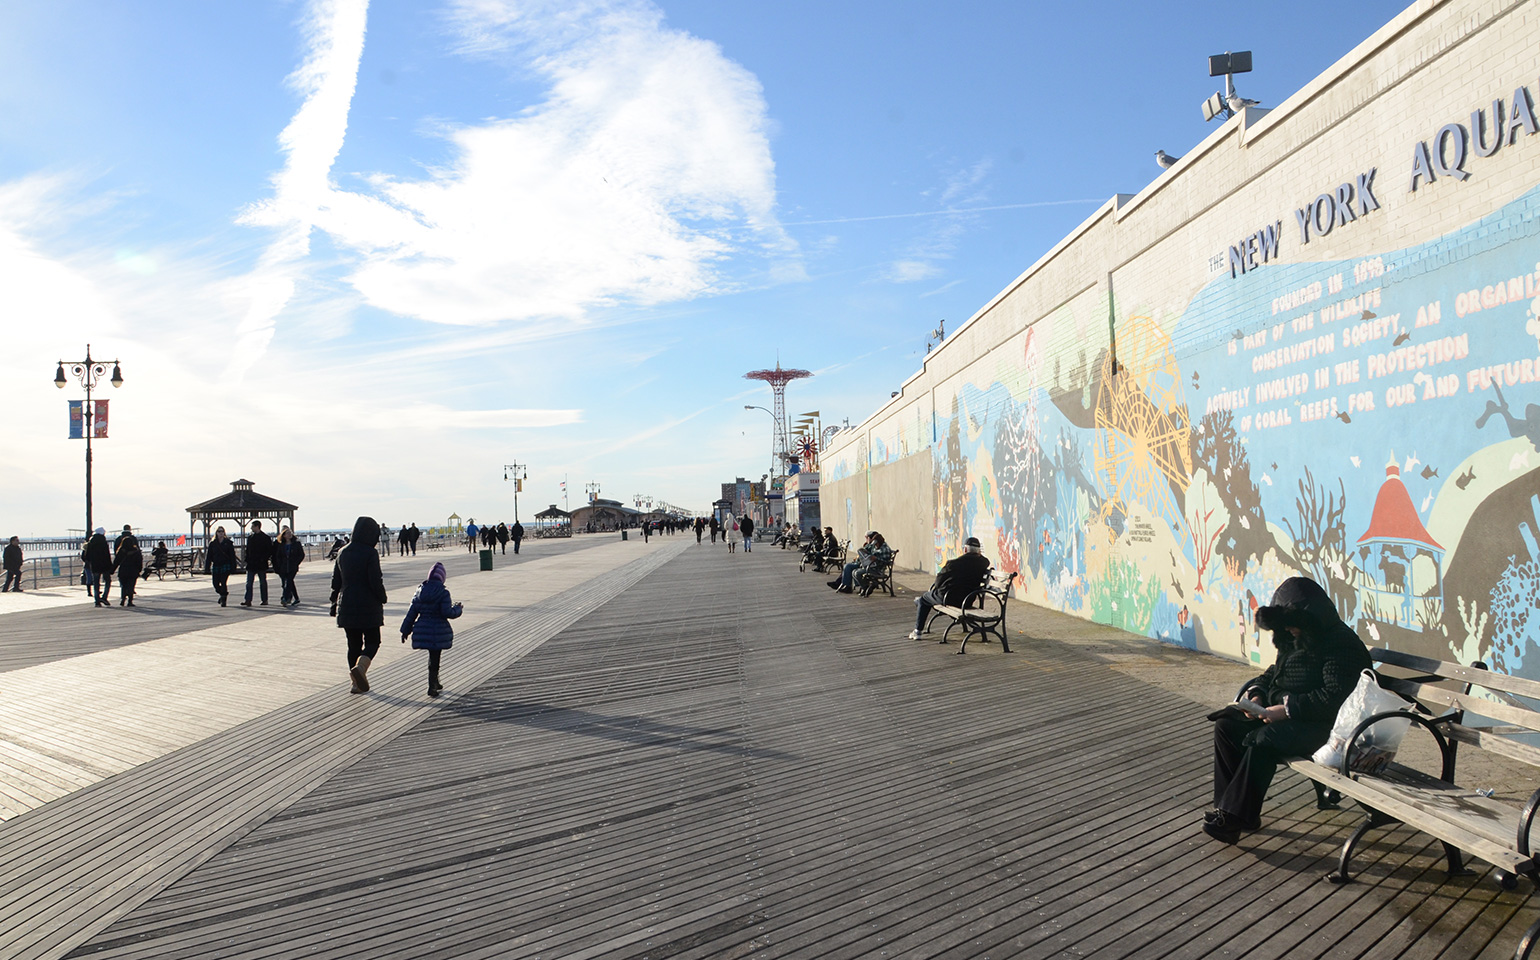 Coney Island, Brooklyn, New York, United States